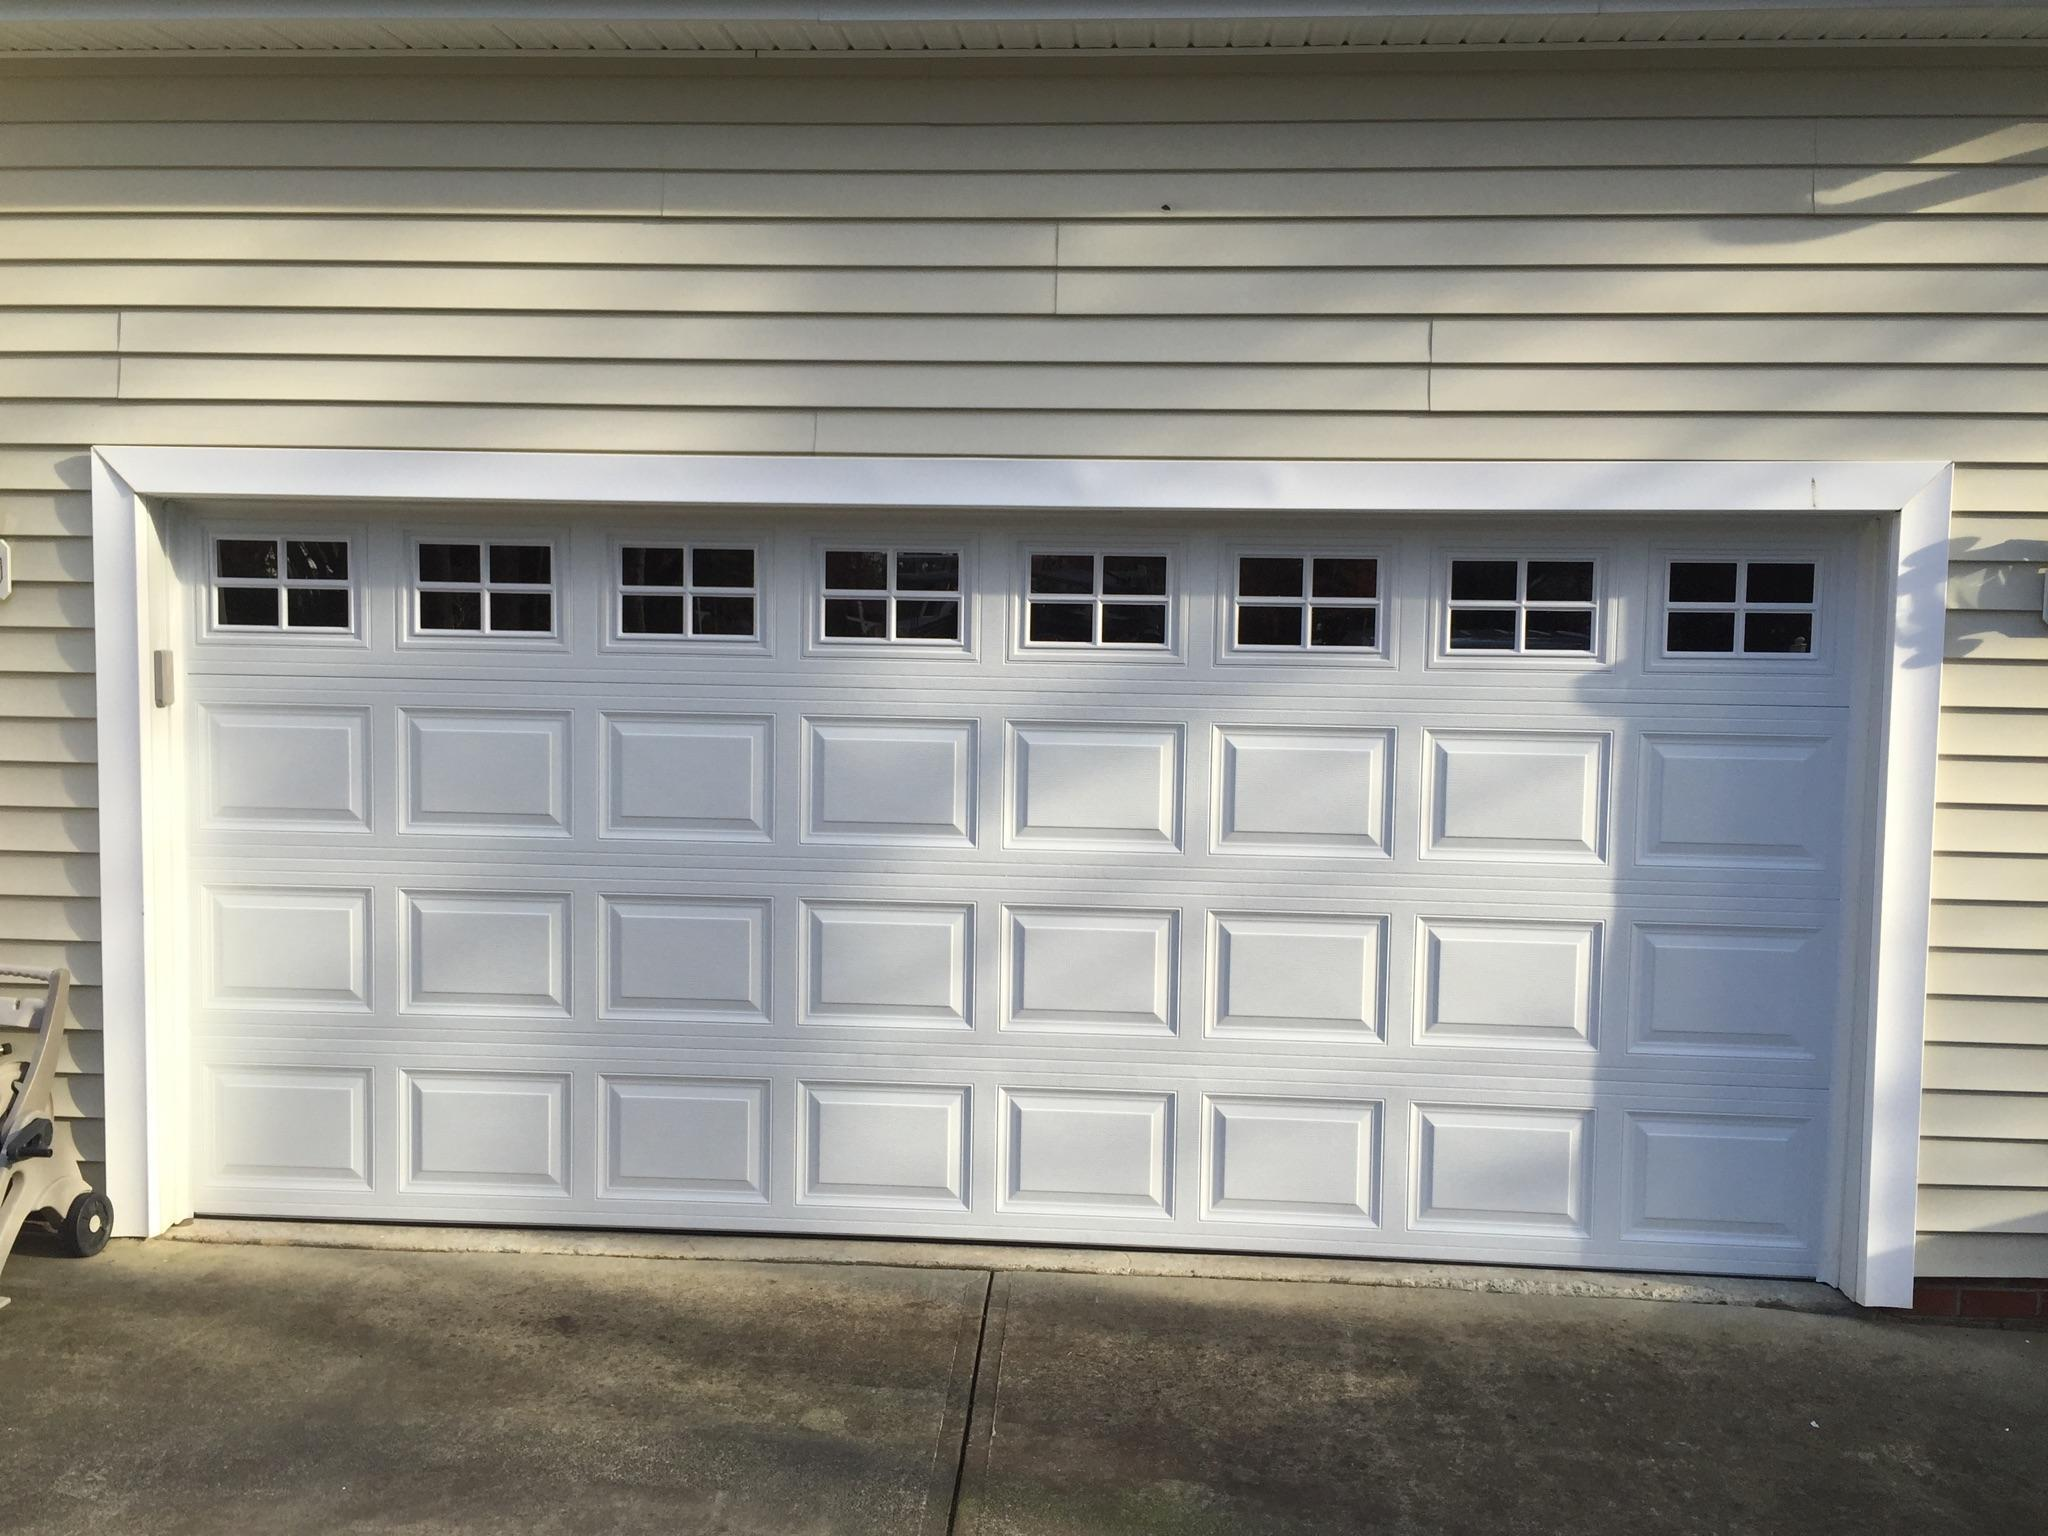 1536 #766D55 All American Overhead Garage Door Inc. In Wendell NC 27591  image Overhead Garage Doors Residential Reviews 37132048